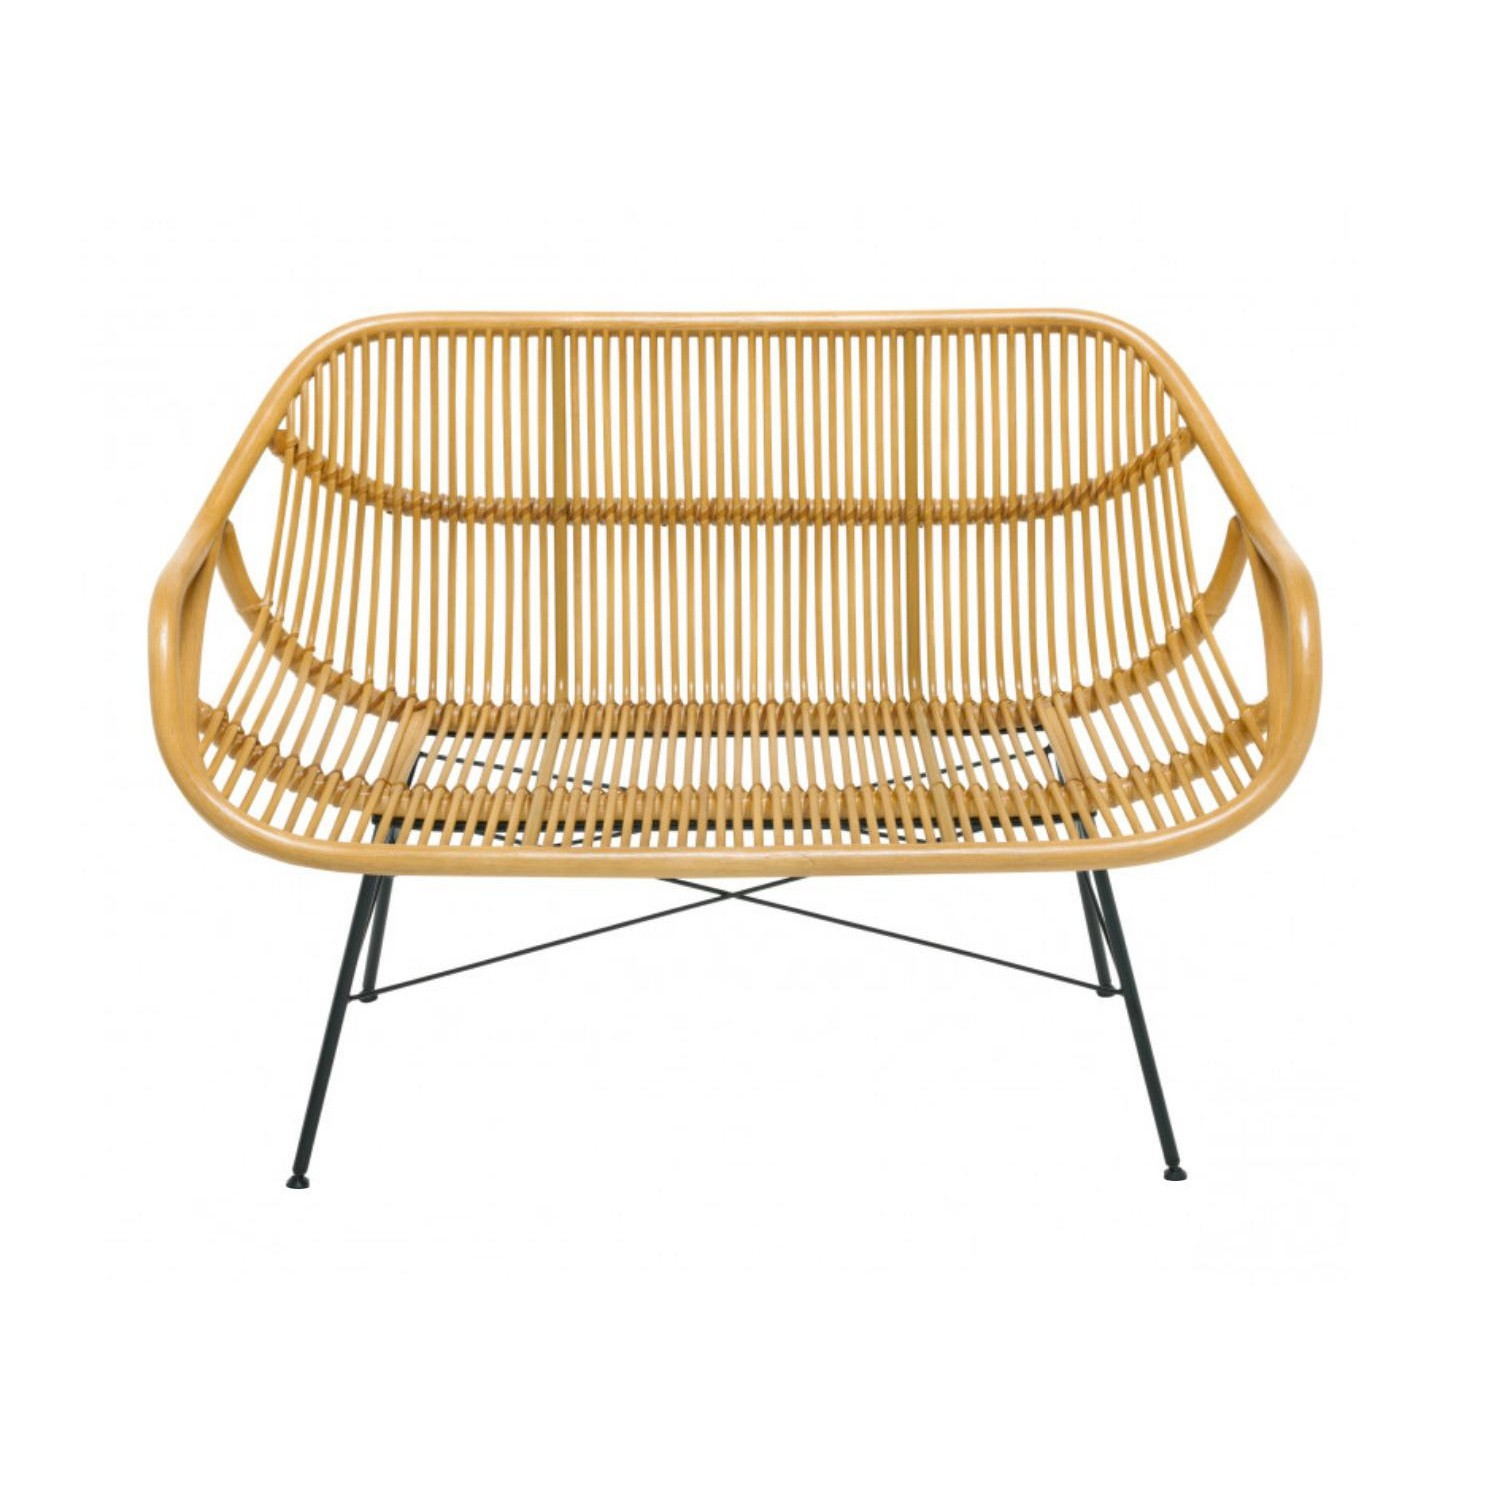 Bank Rattan Yara 2 Seater Bench